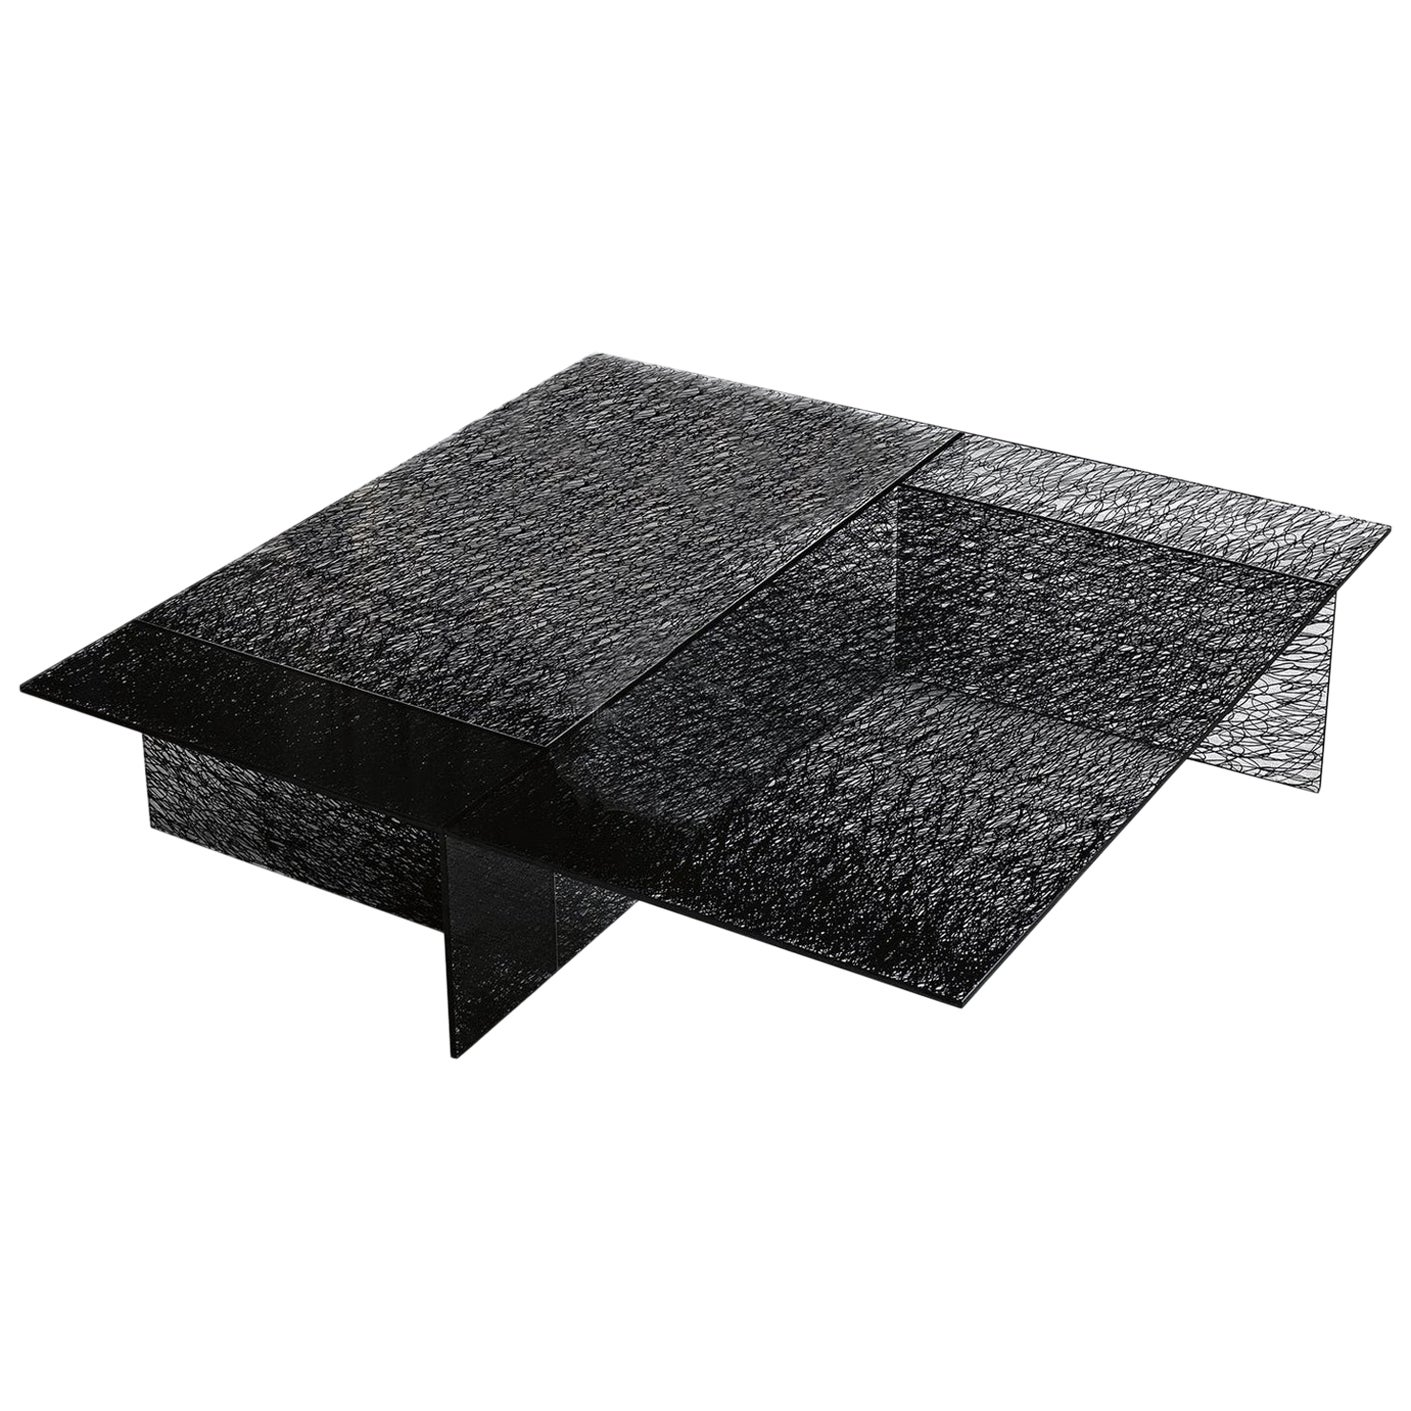 In Stock in Los Angeles, Sestante Black Glass Coffee Table, Made in Italy